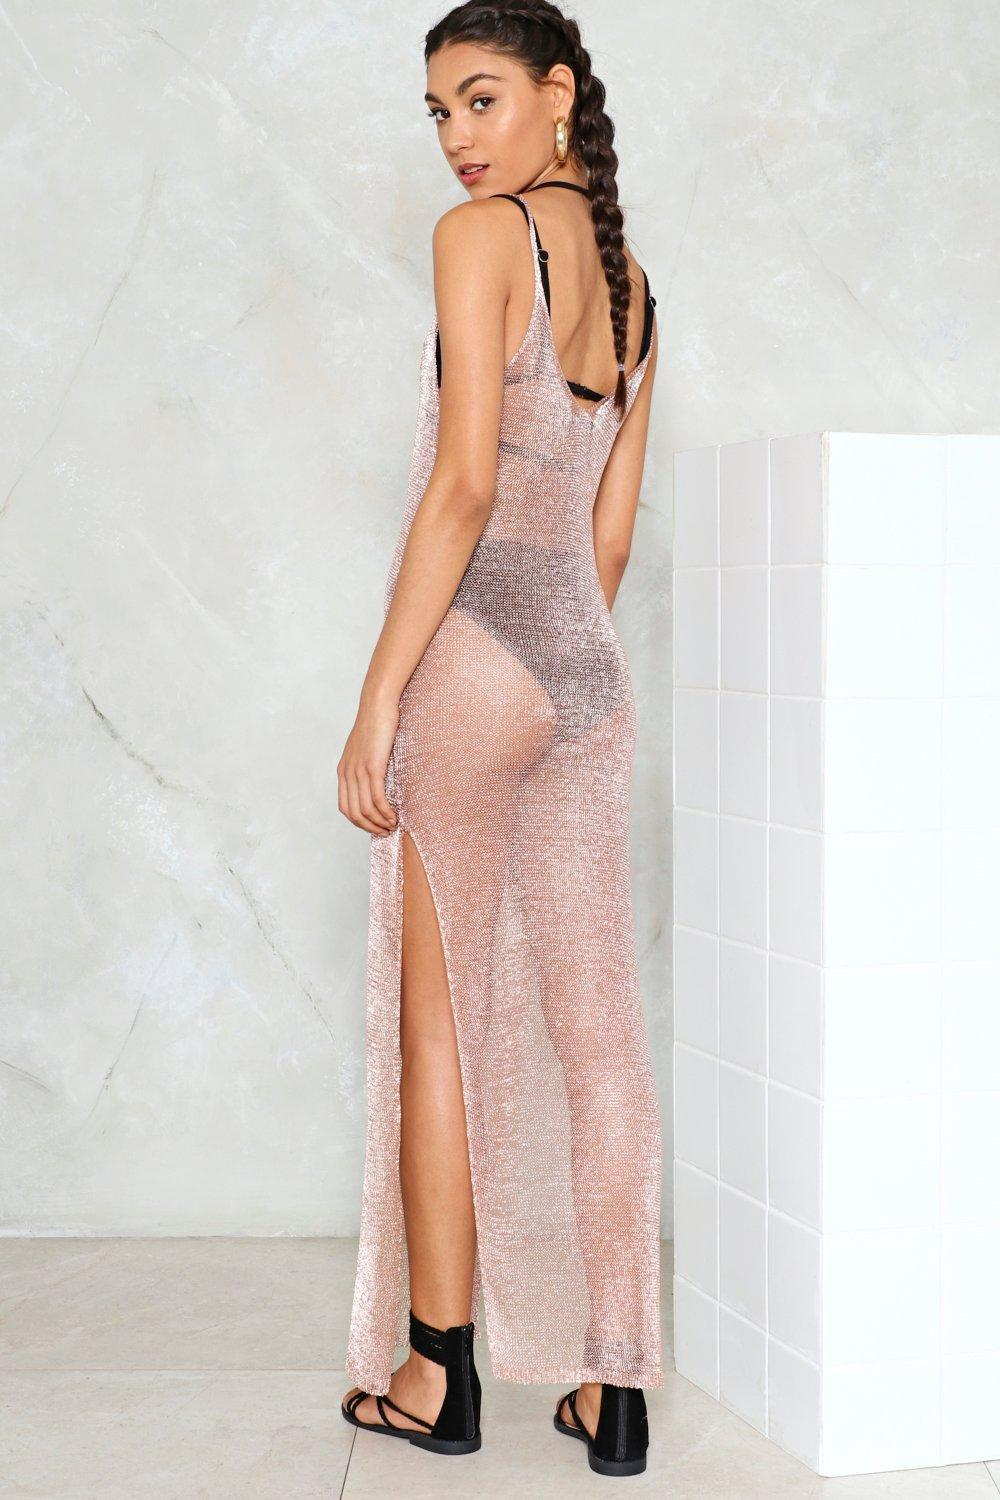 598c142624260 Womens Rose gold Metallic Yarn Maxi Beach Cover Up. Hover to zoom